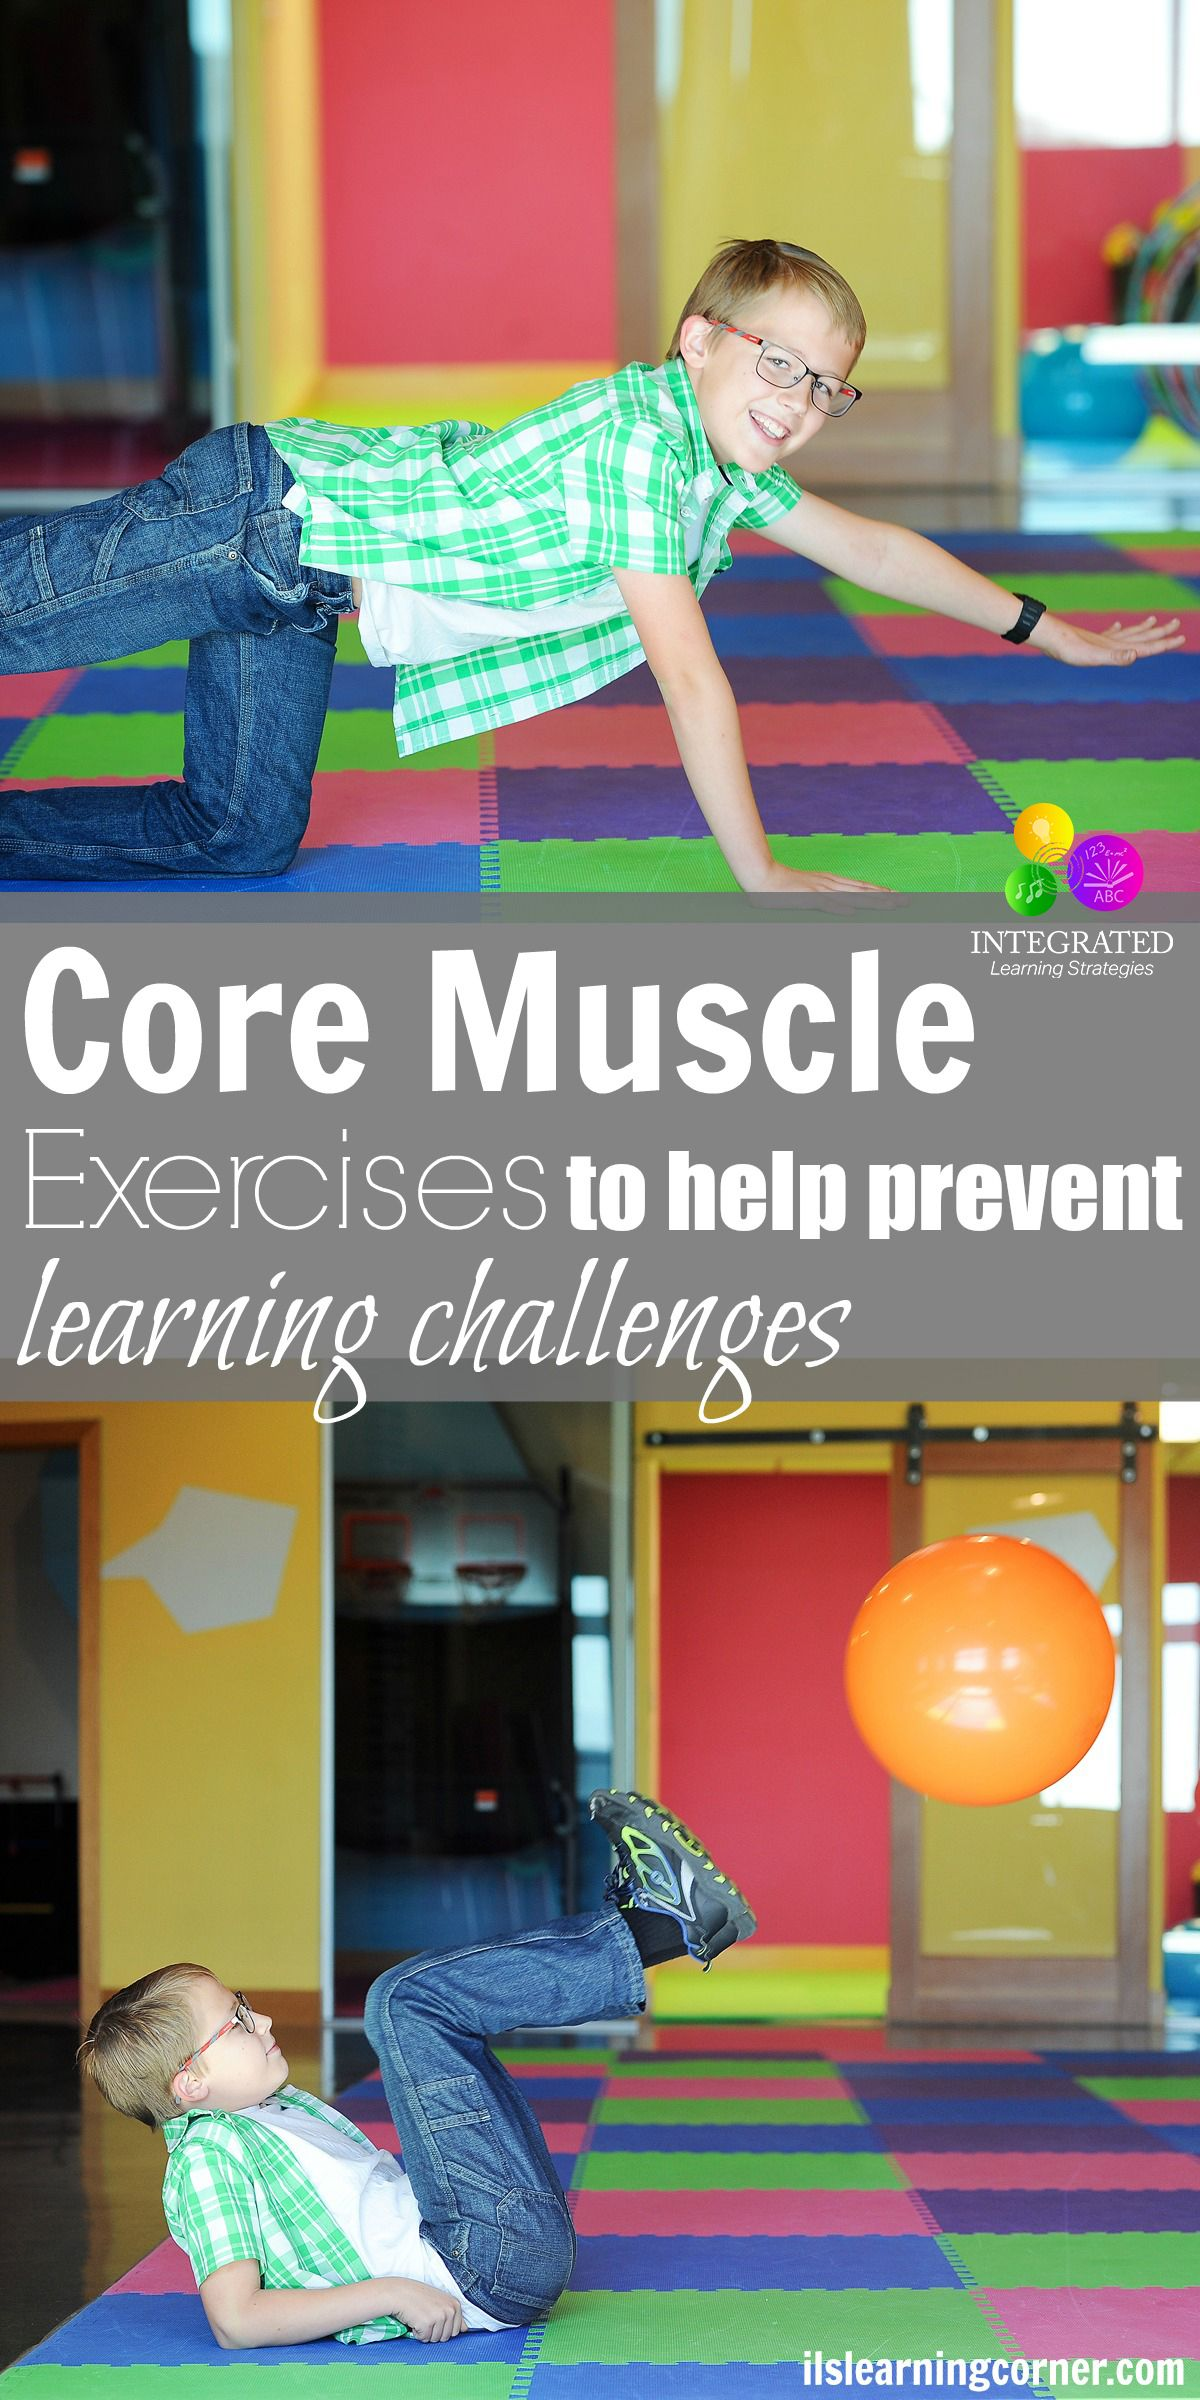 ways to help students sensory challenges at school why these core muscle exercises help prevent learning challenges in the classroom ilslearningcorner com